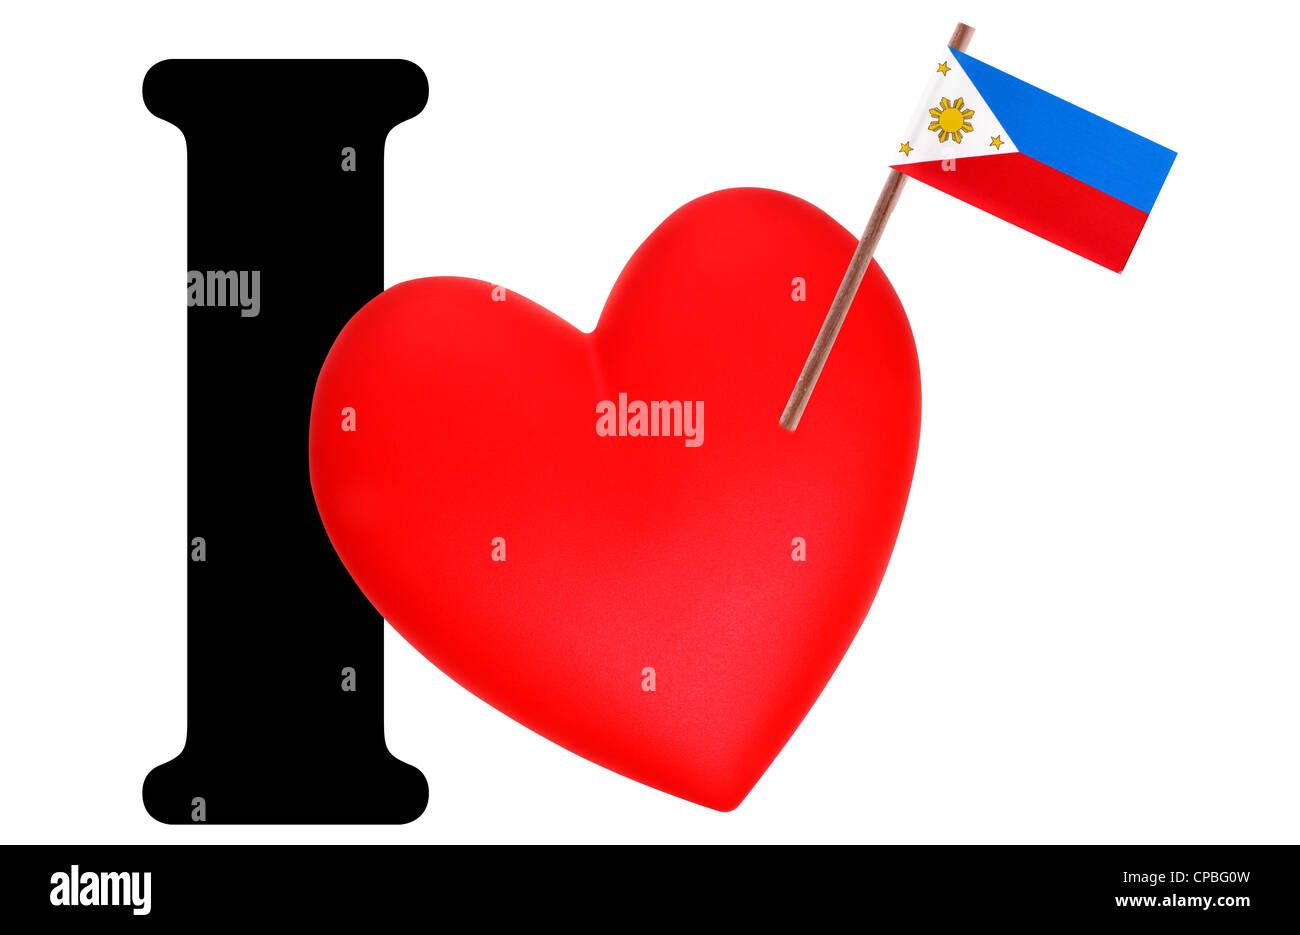 The Philippines Cut Out Stock Images & Pictures - Alamy